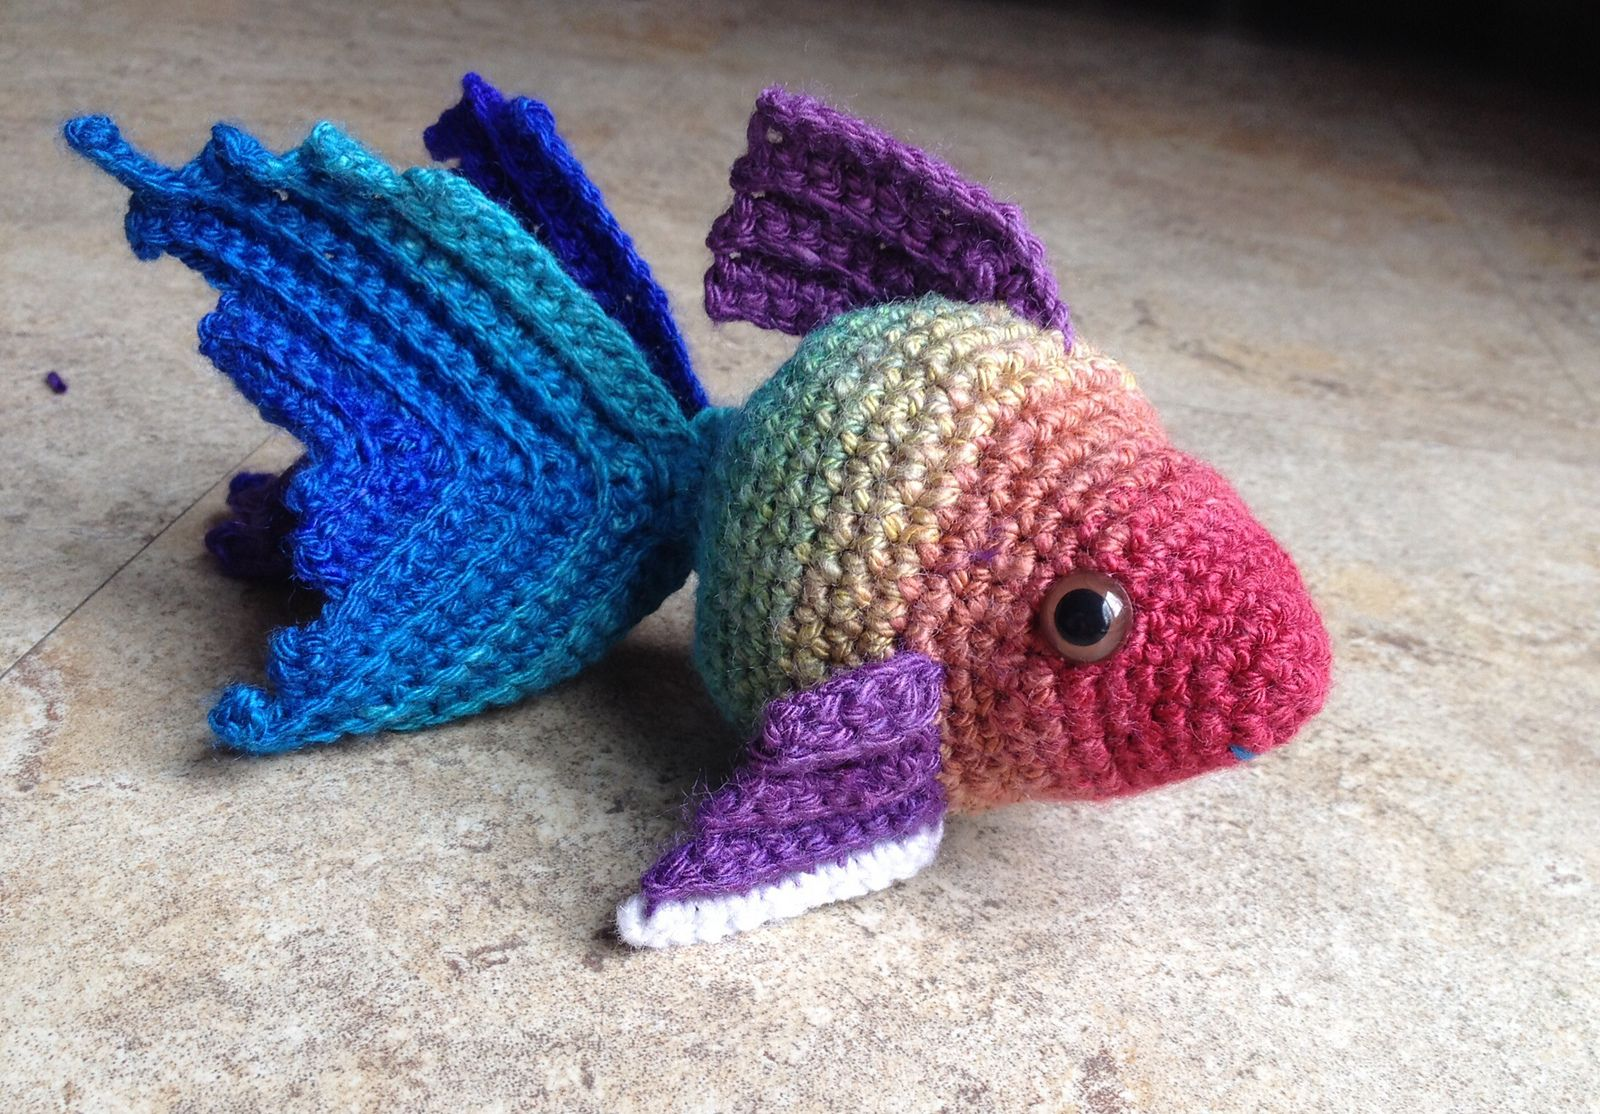 Free amigurumi ravelry : Fancy goldfish amigurumi by kate wood free crochet